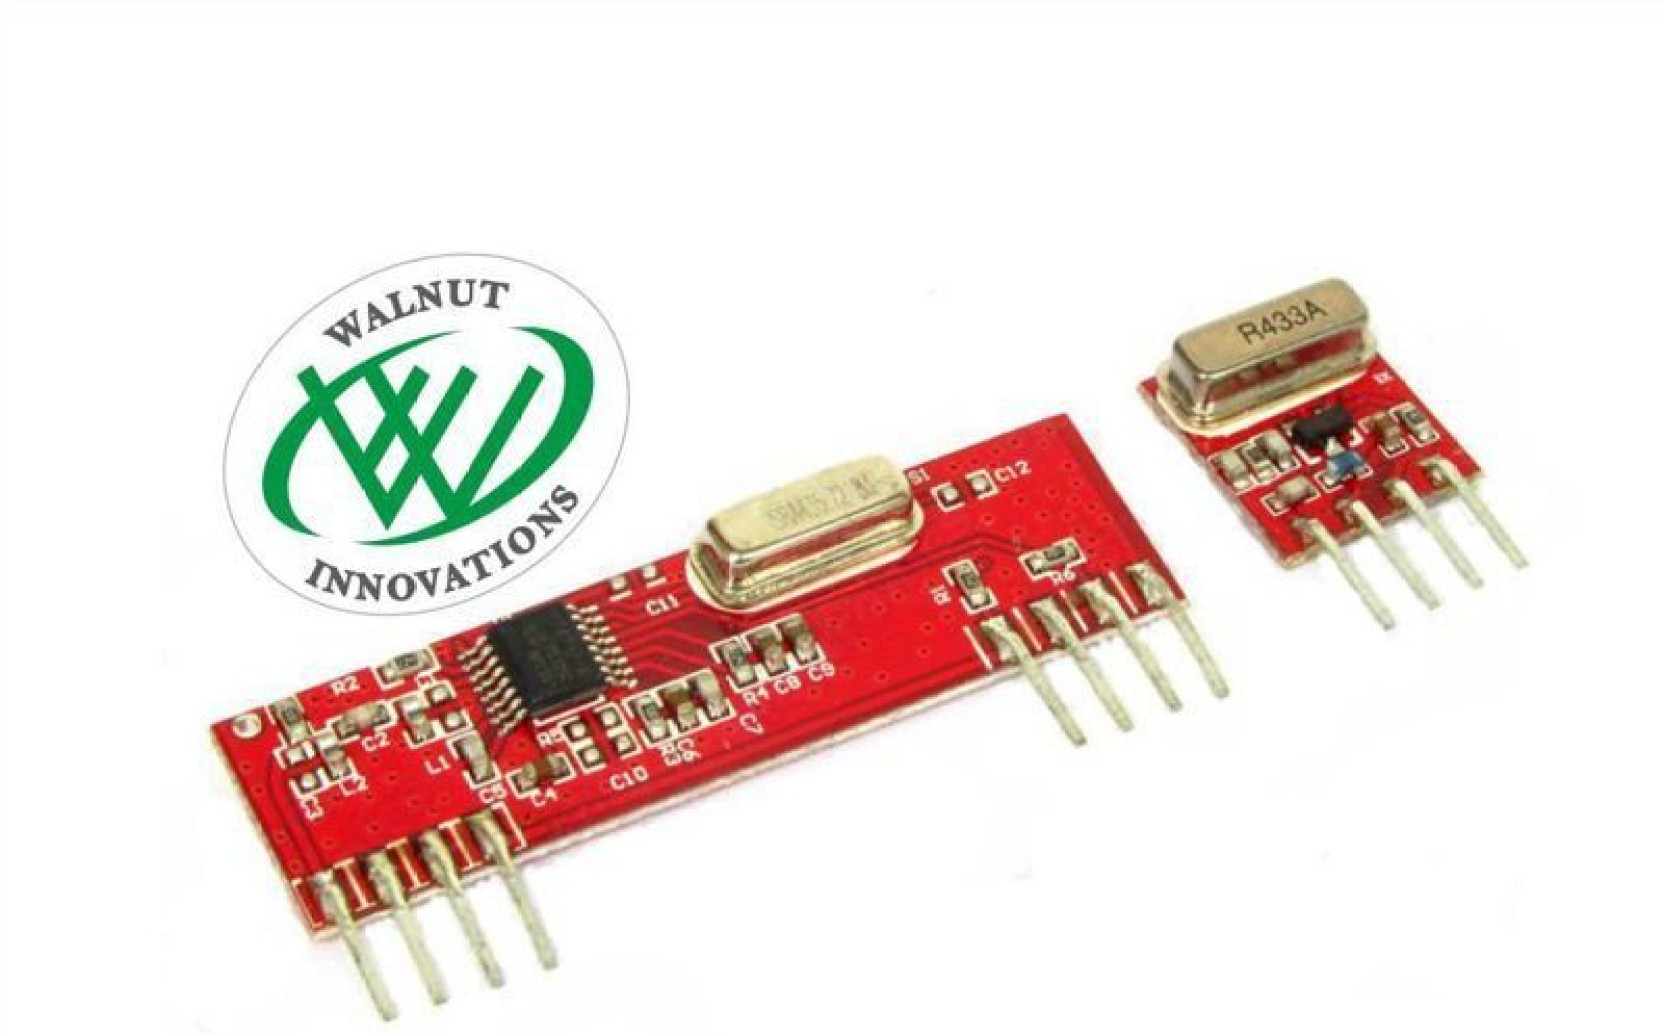 Walnut Innovations 433mhz Rf Wireless Transmitter Receiver Module Pair Operating At 433 Mhz Add To Cart